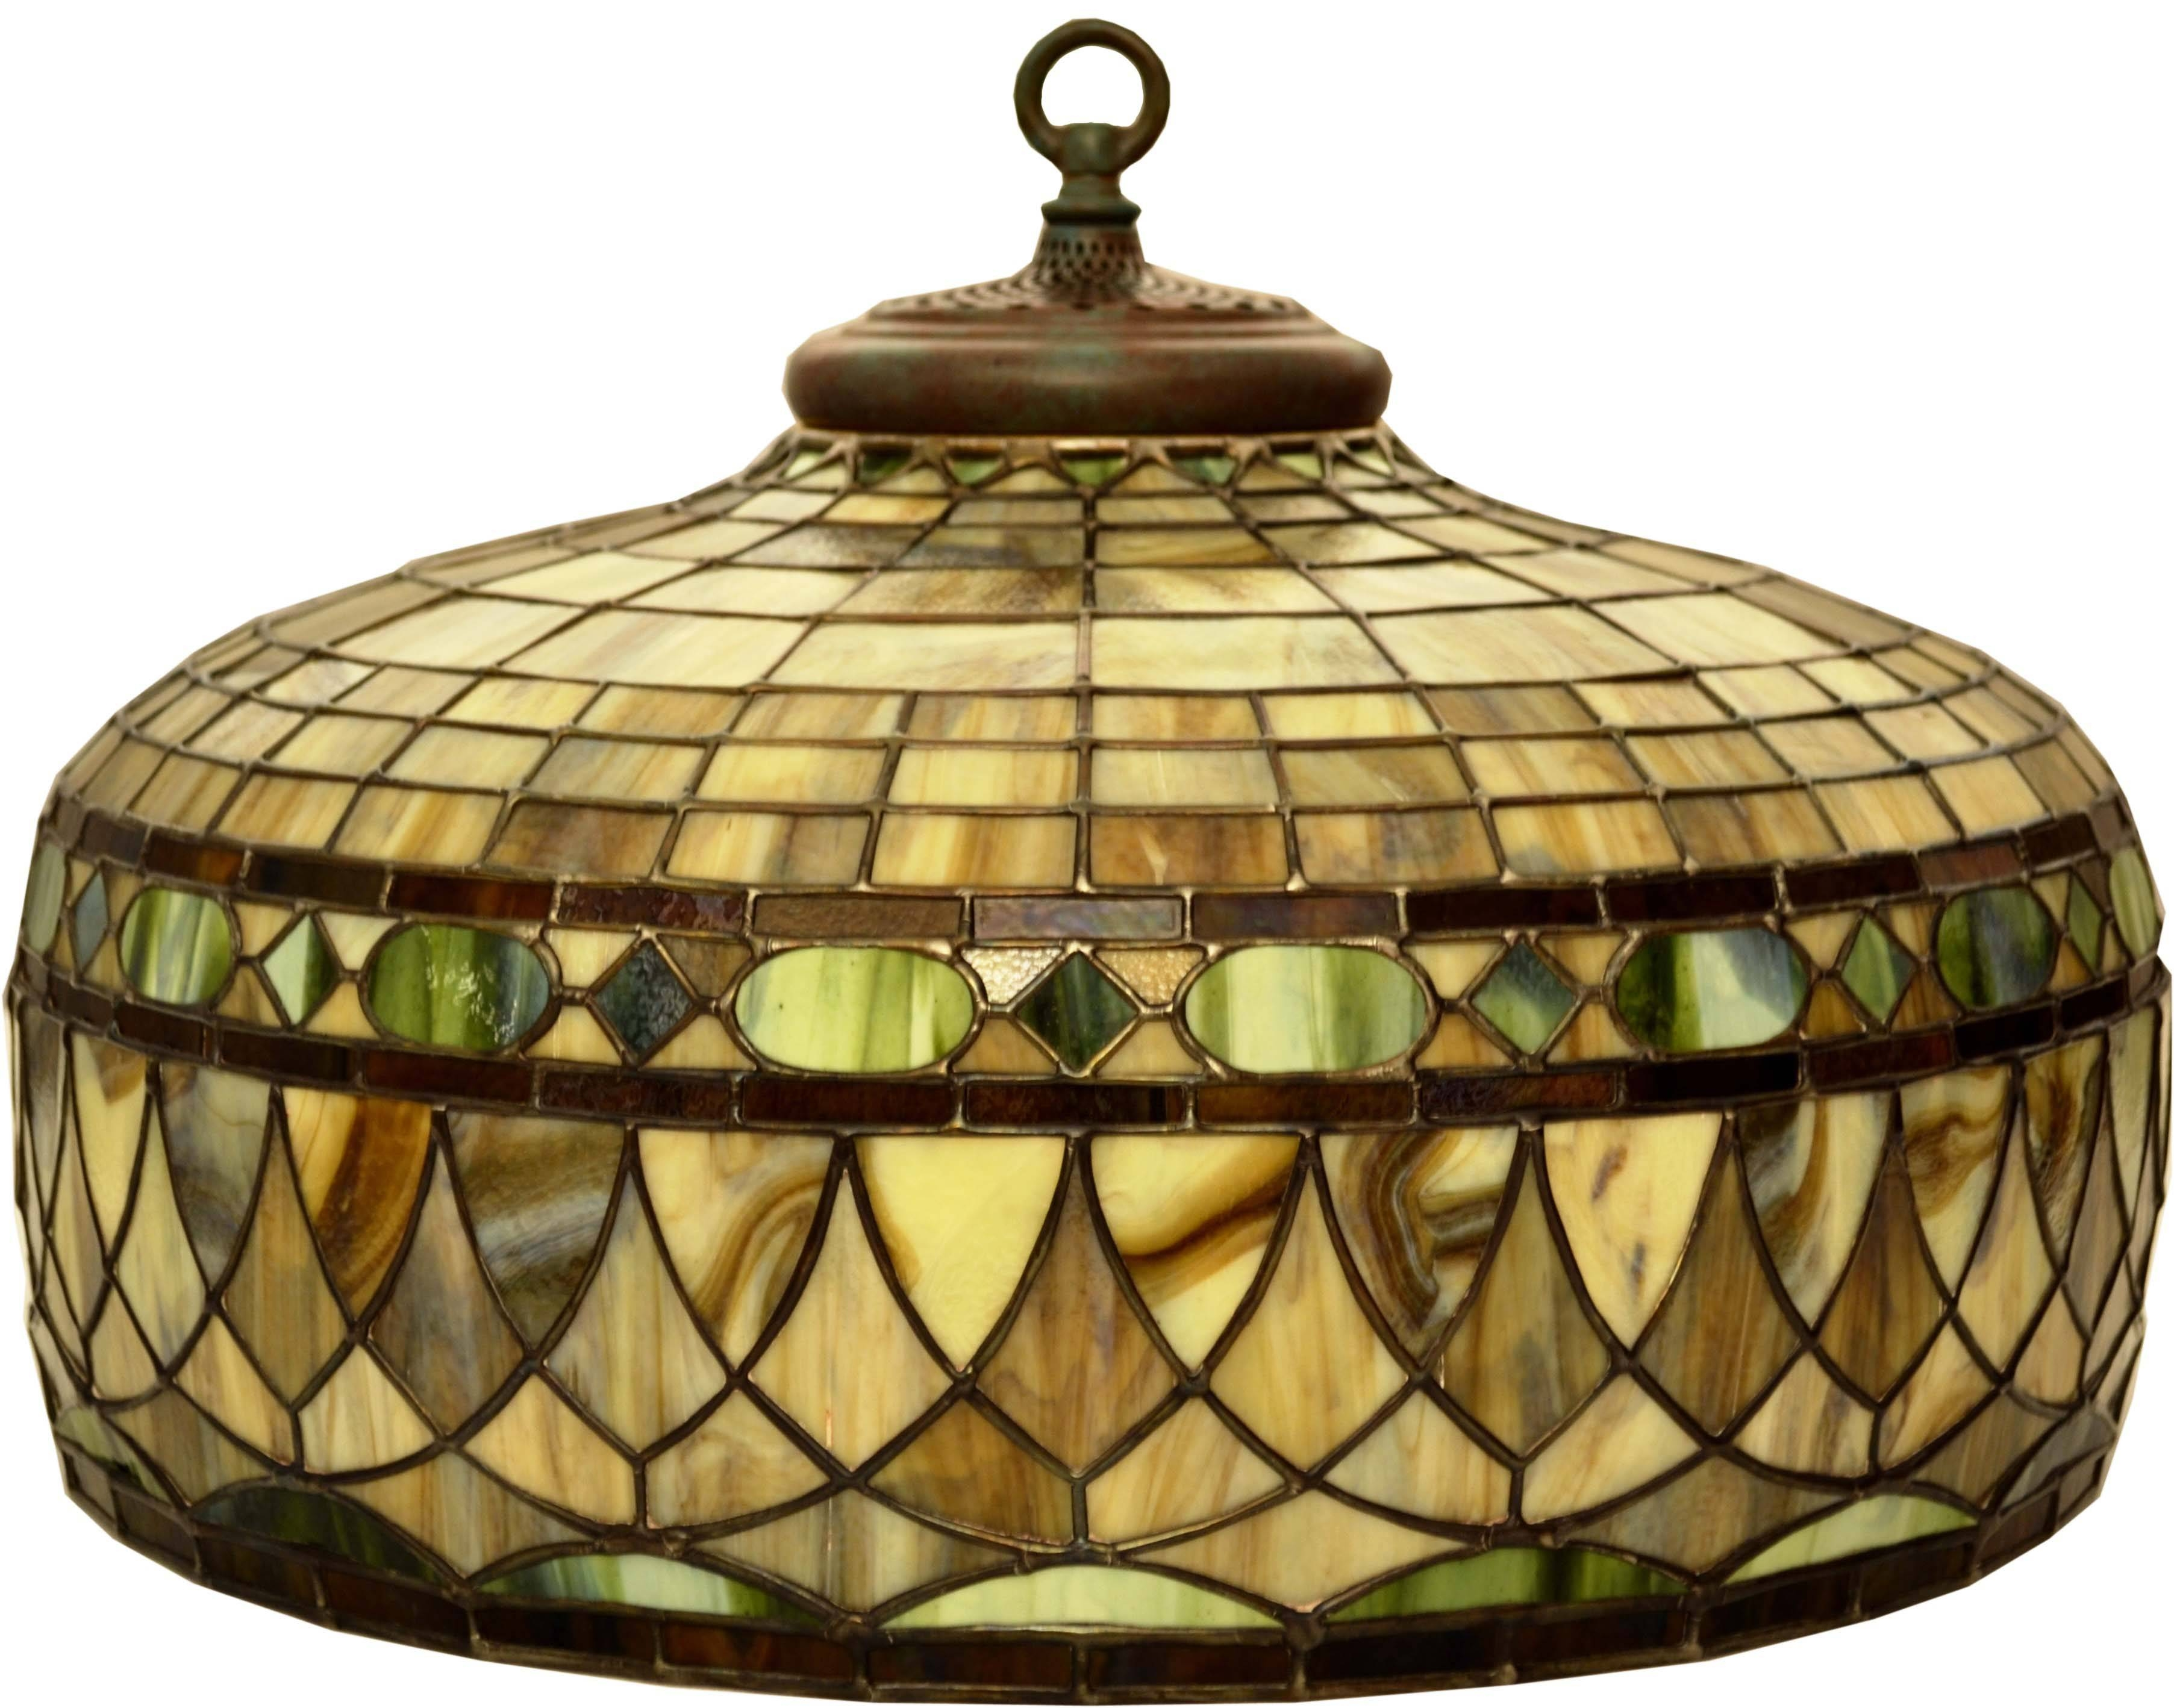 Stained Glass Lamp Shades Pictures – Home Furniture Ideas In Stained Glass Pendant Light Patterns (View 5 of 15)